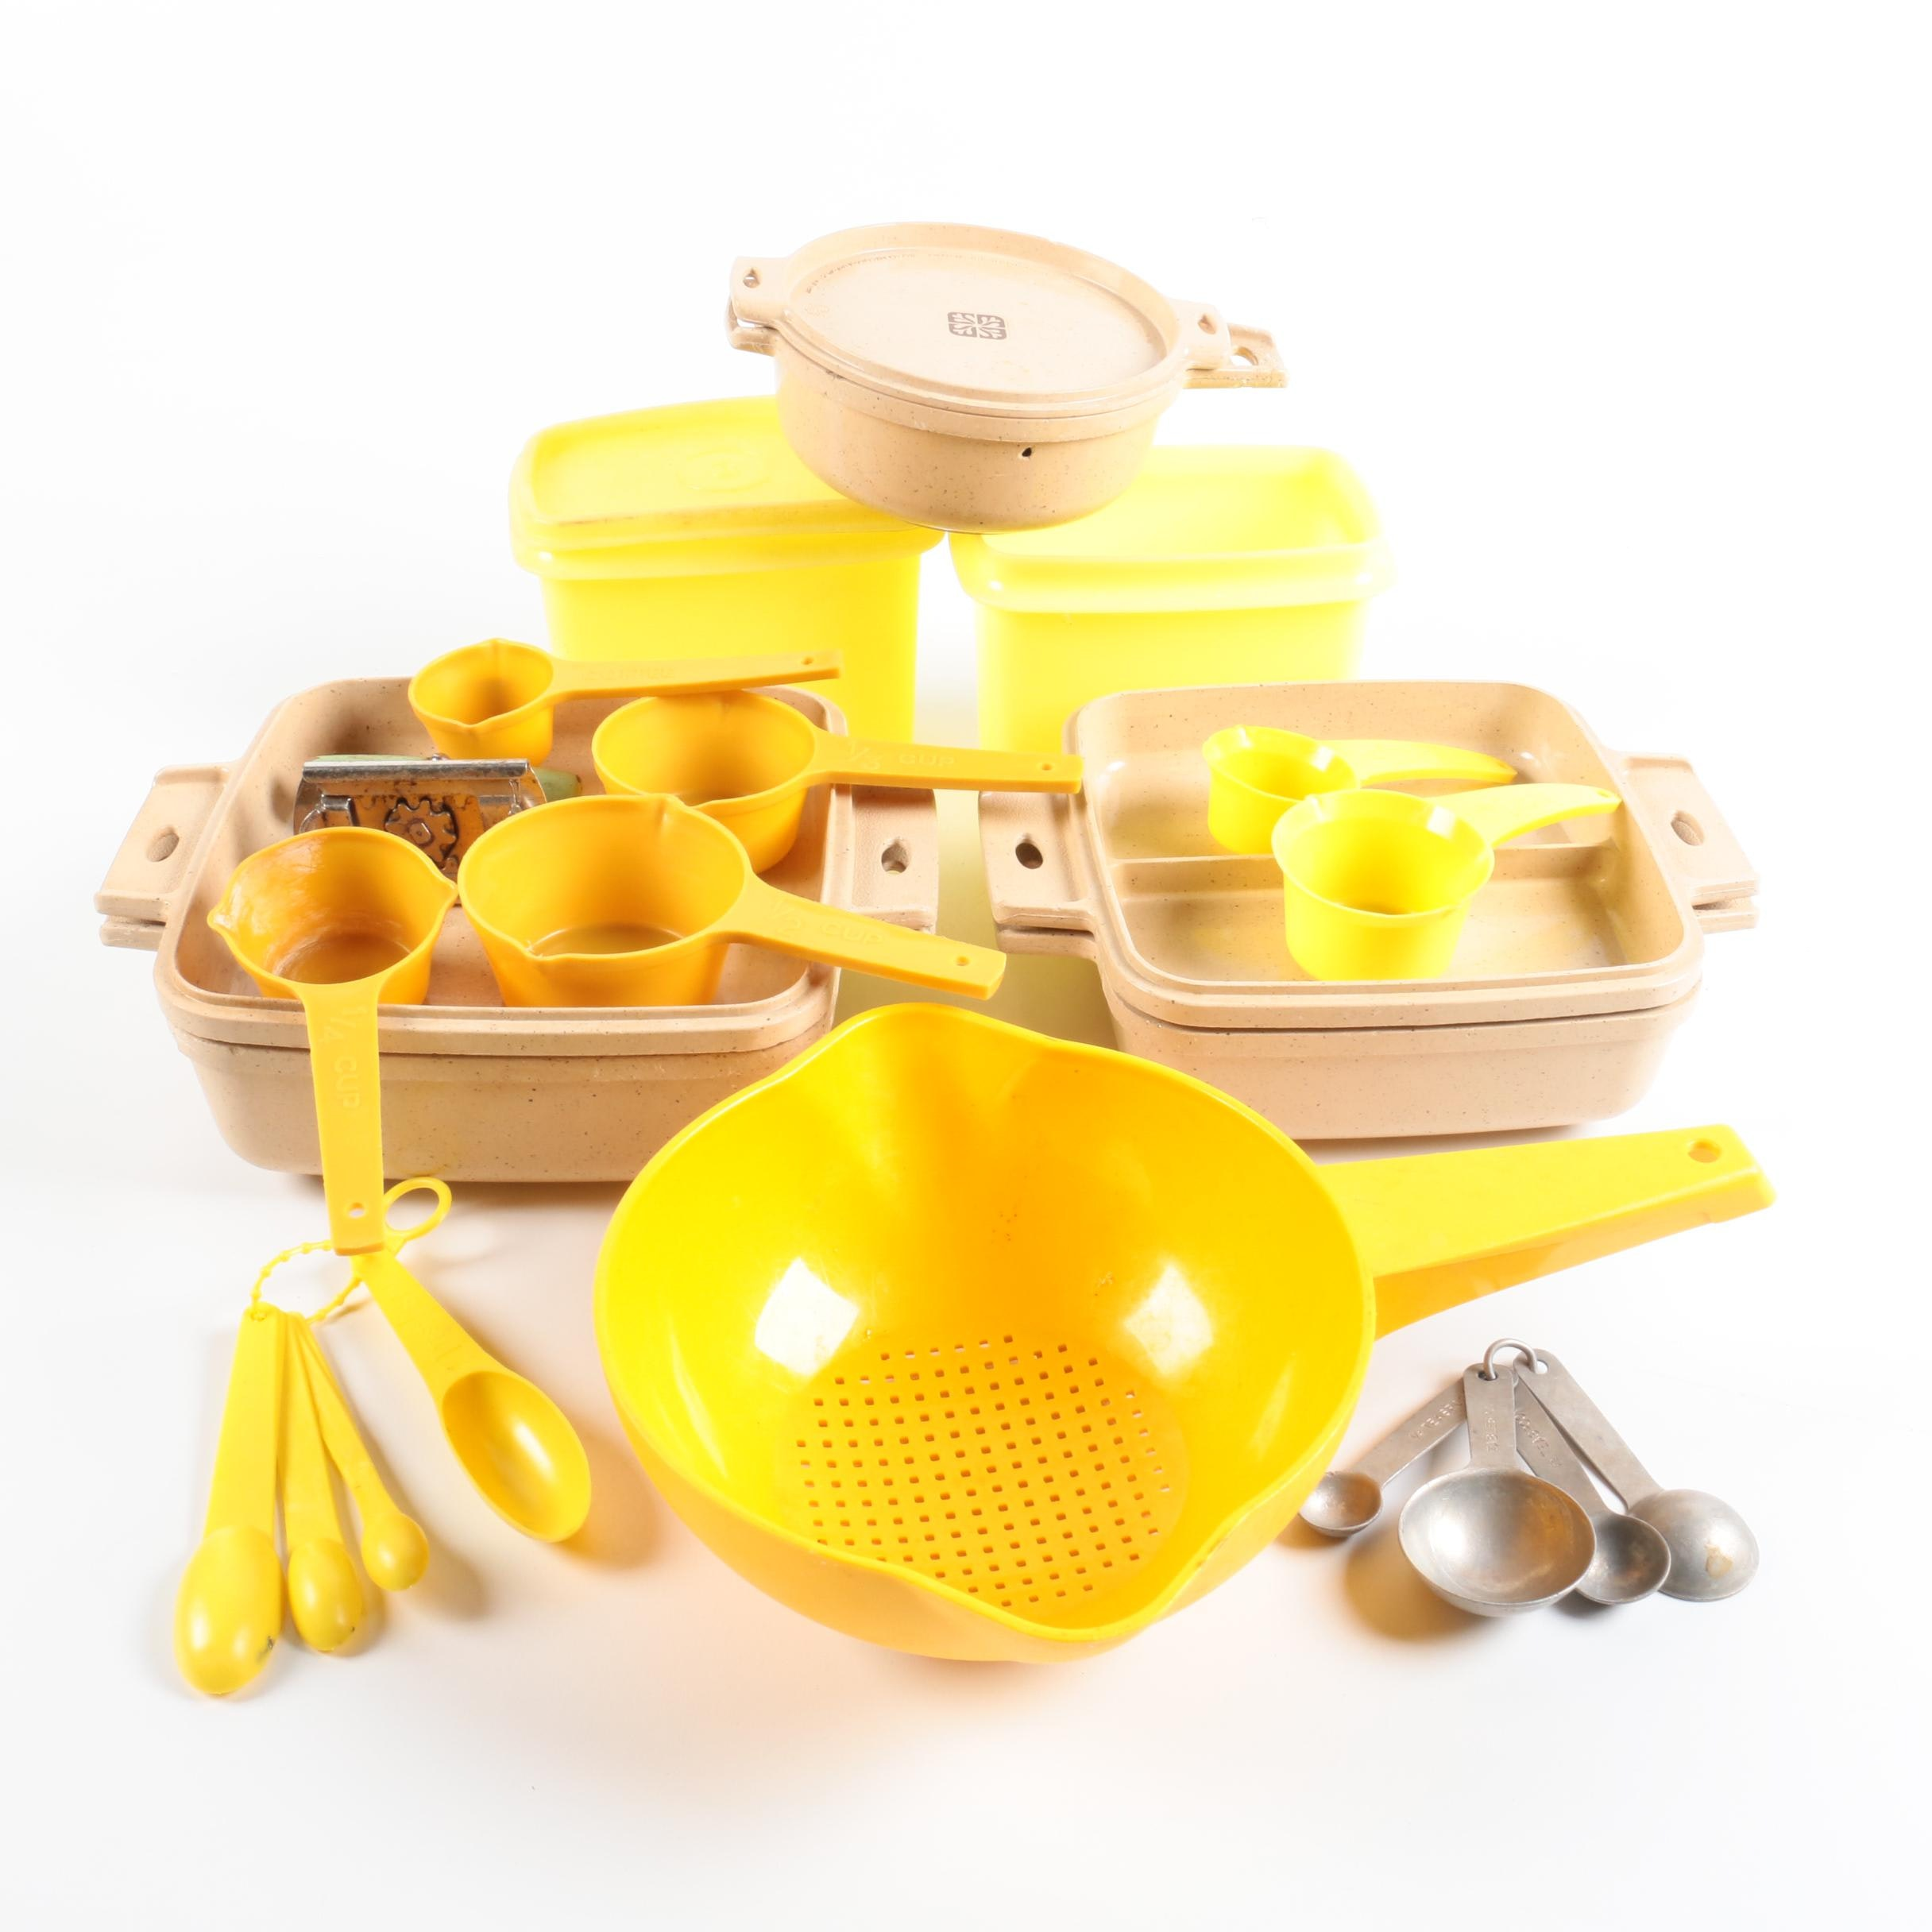 Littonware Storage Containers with Measuring Spoons and Strainer